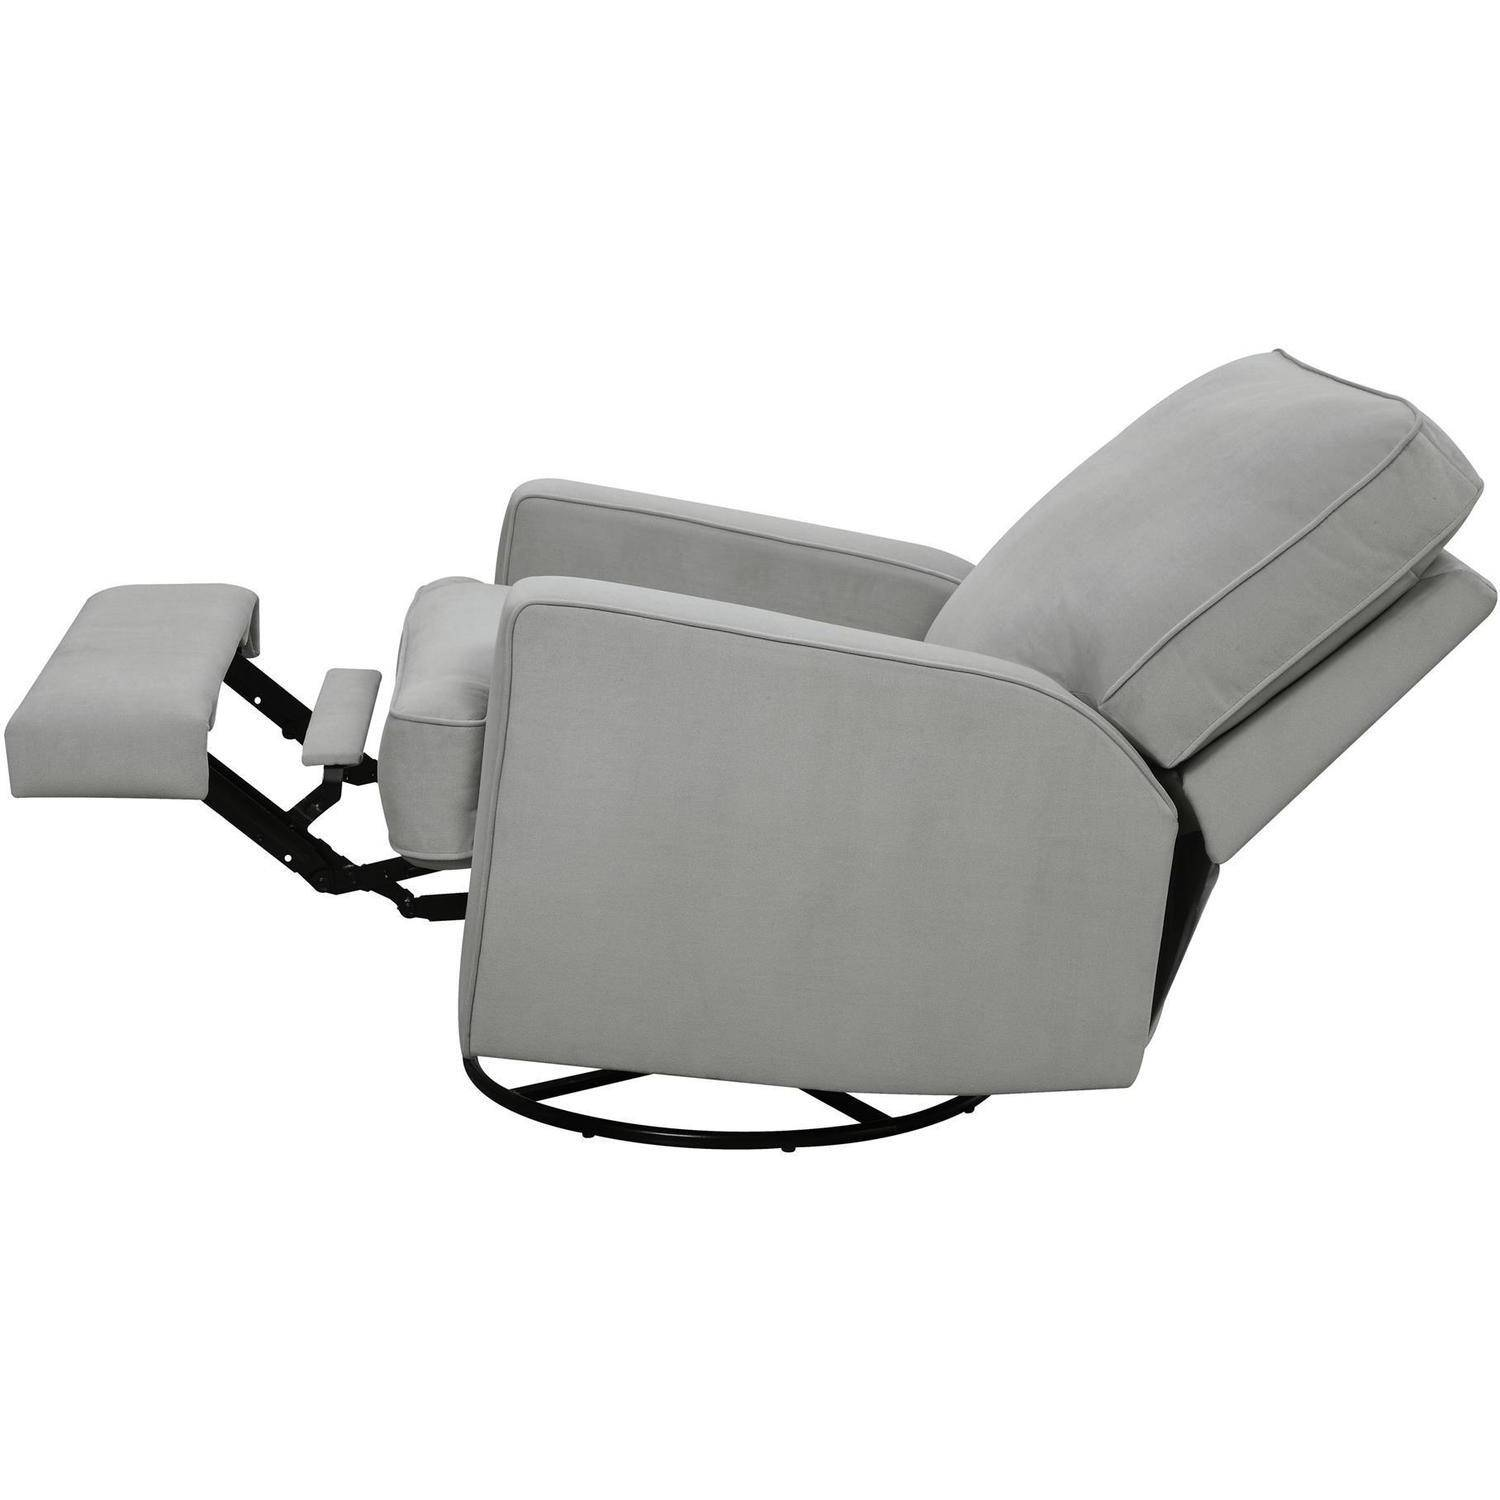 Baby Relax Rylan Swivel Gliding Recliner (Choose your Color) - Walmart.com  sc 1 st  Walmart & Baby Relax Rylan Swivel Gliding Recliner (Choose your Color ... islam-shia.org